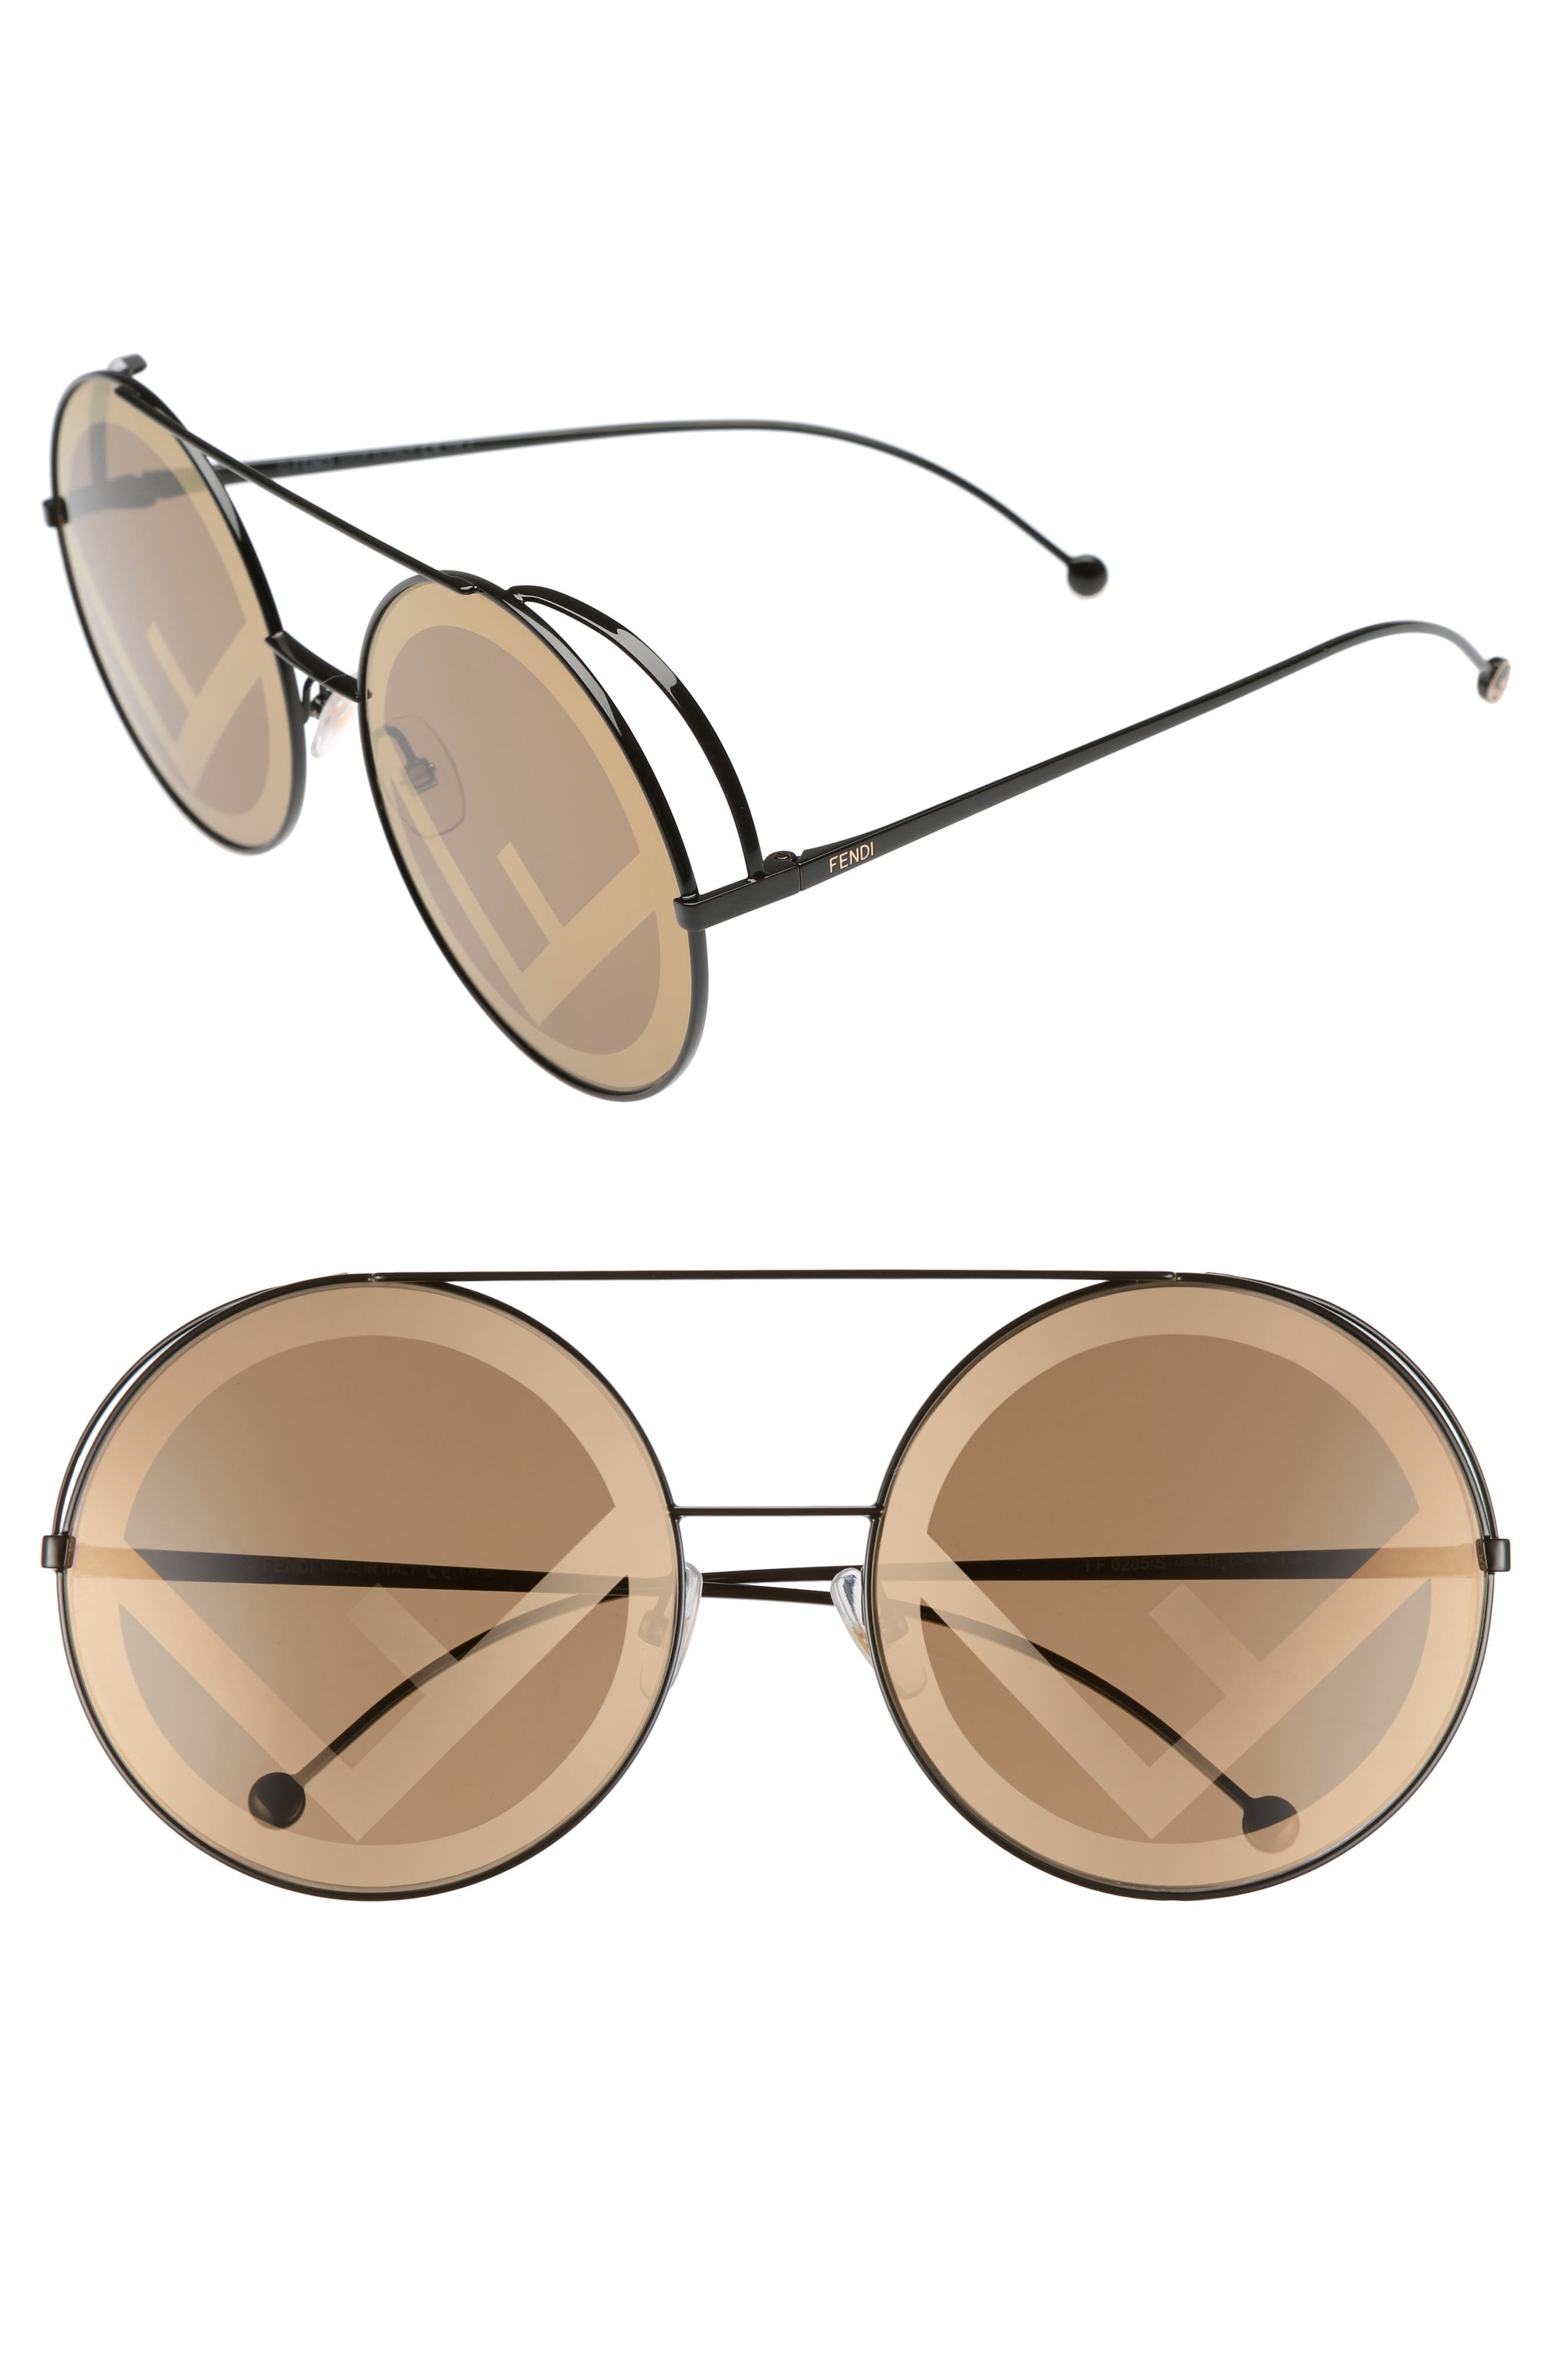 Run Away 63mm Round Sunglasses,                         Main,                         color, Brown